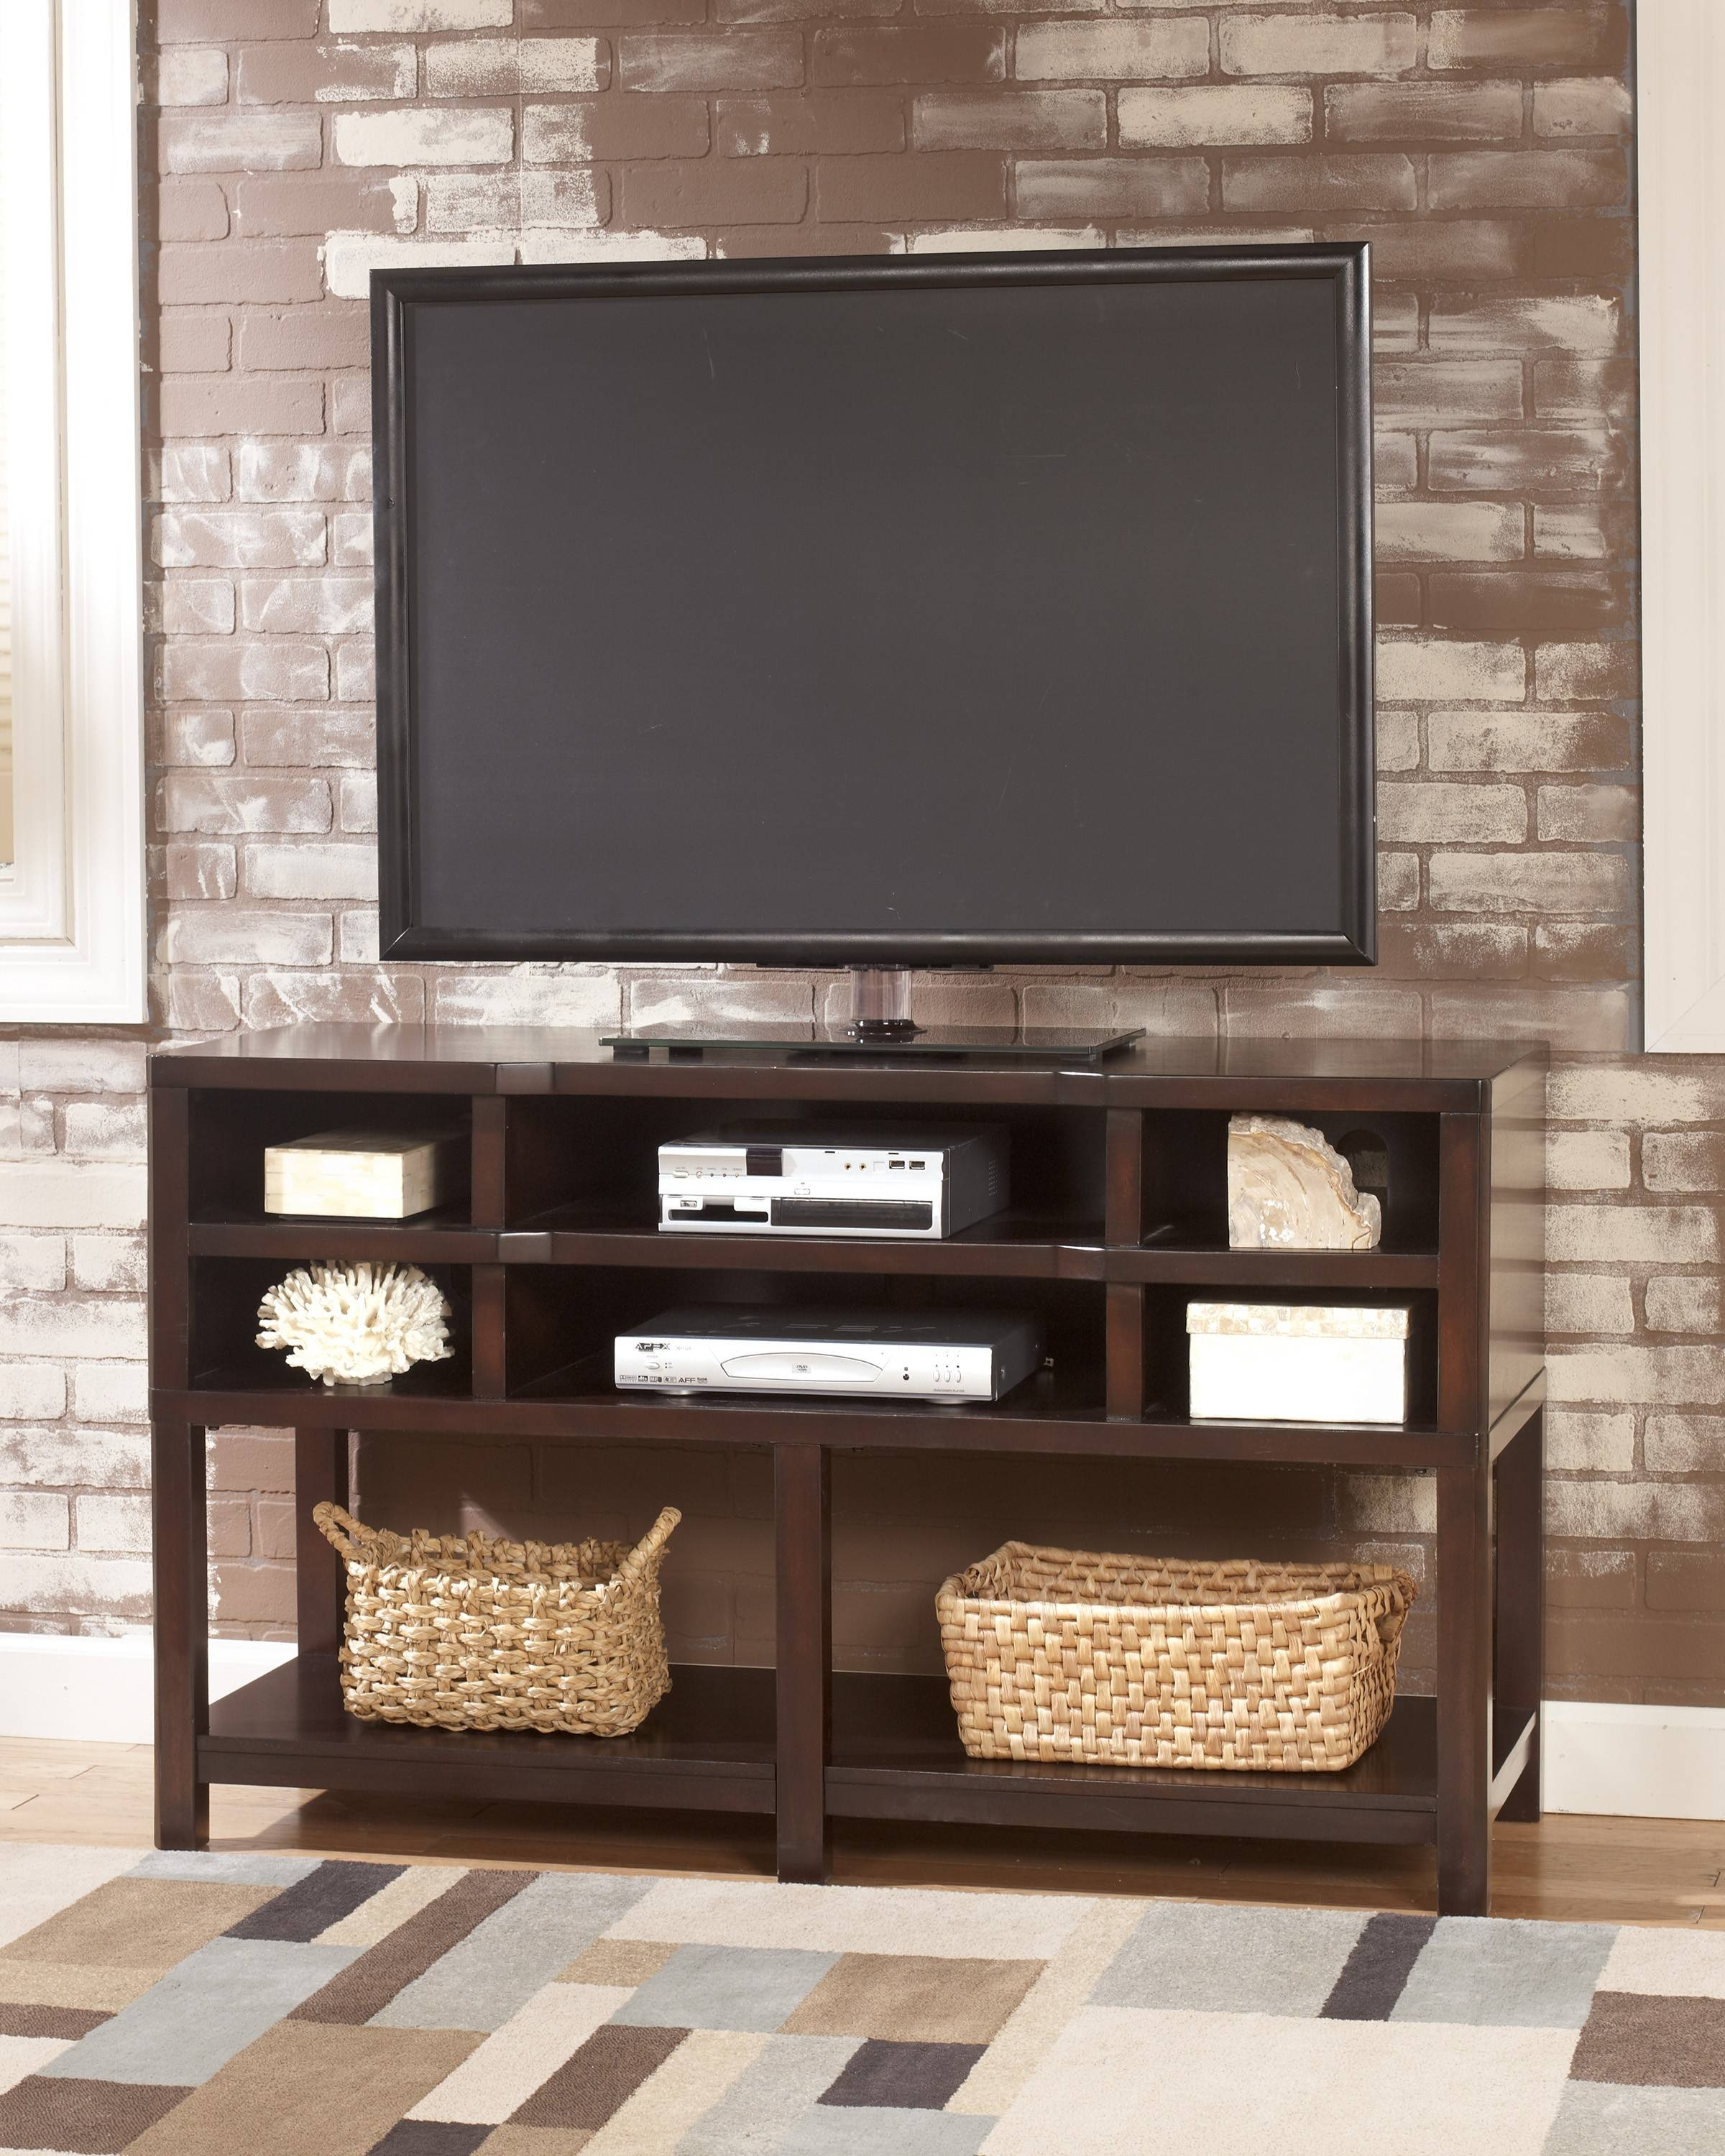 Simple Modern Oak Flat Screen Tv Stand Console Table With throughout Tv Stands With Storage Baskets (Image 5 of 15)